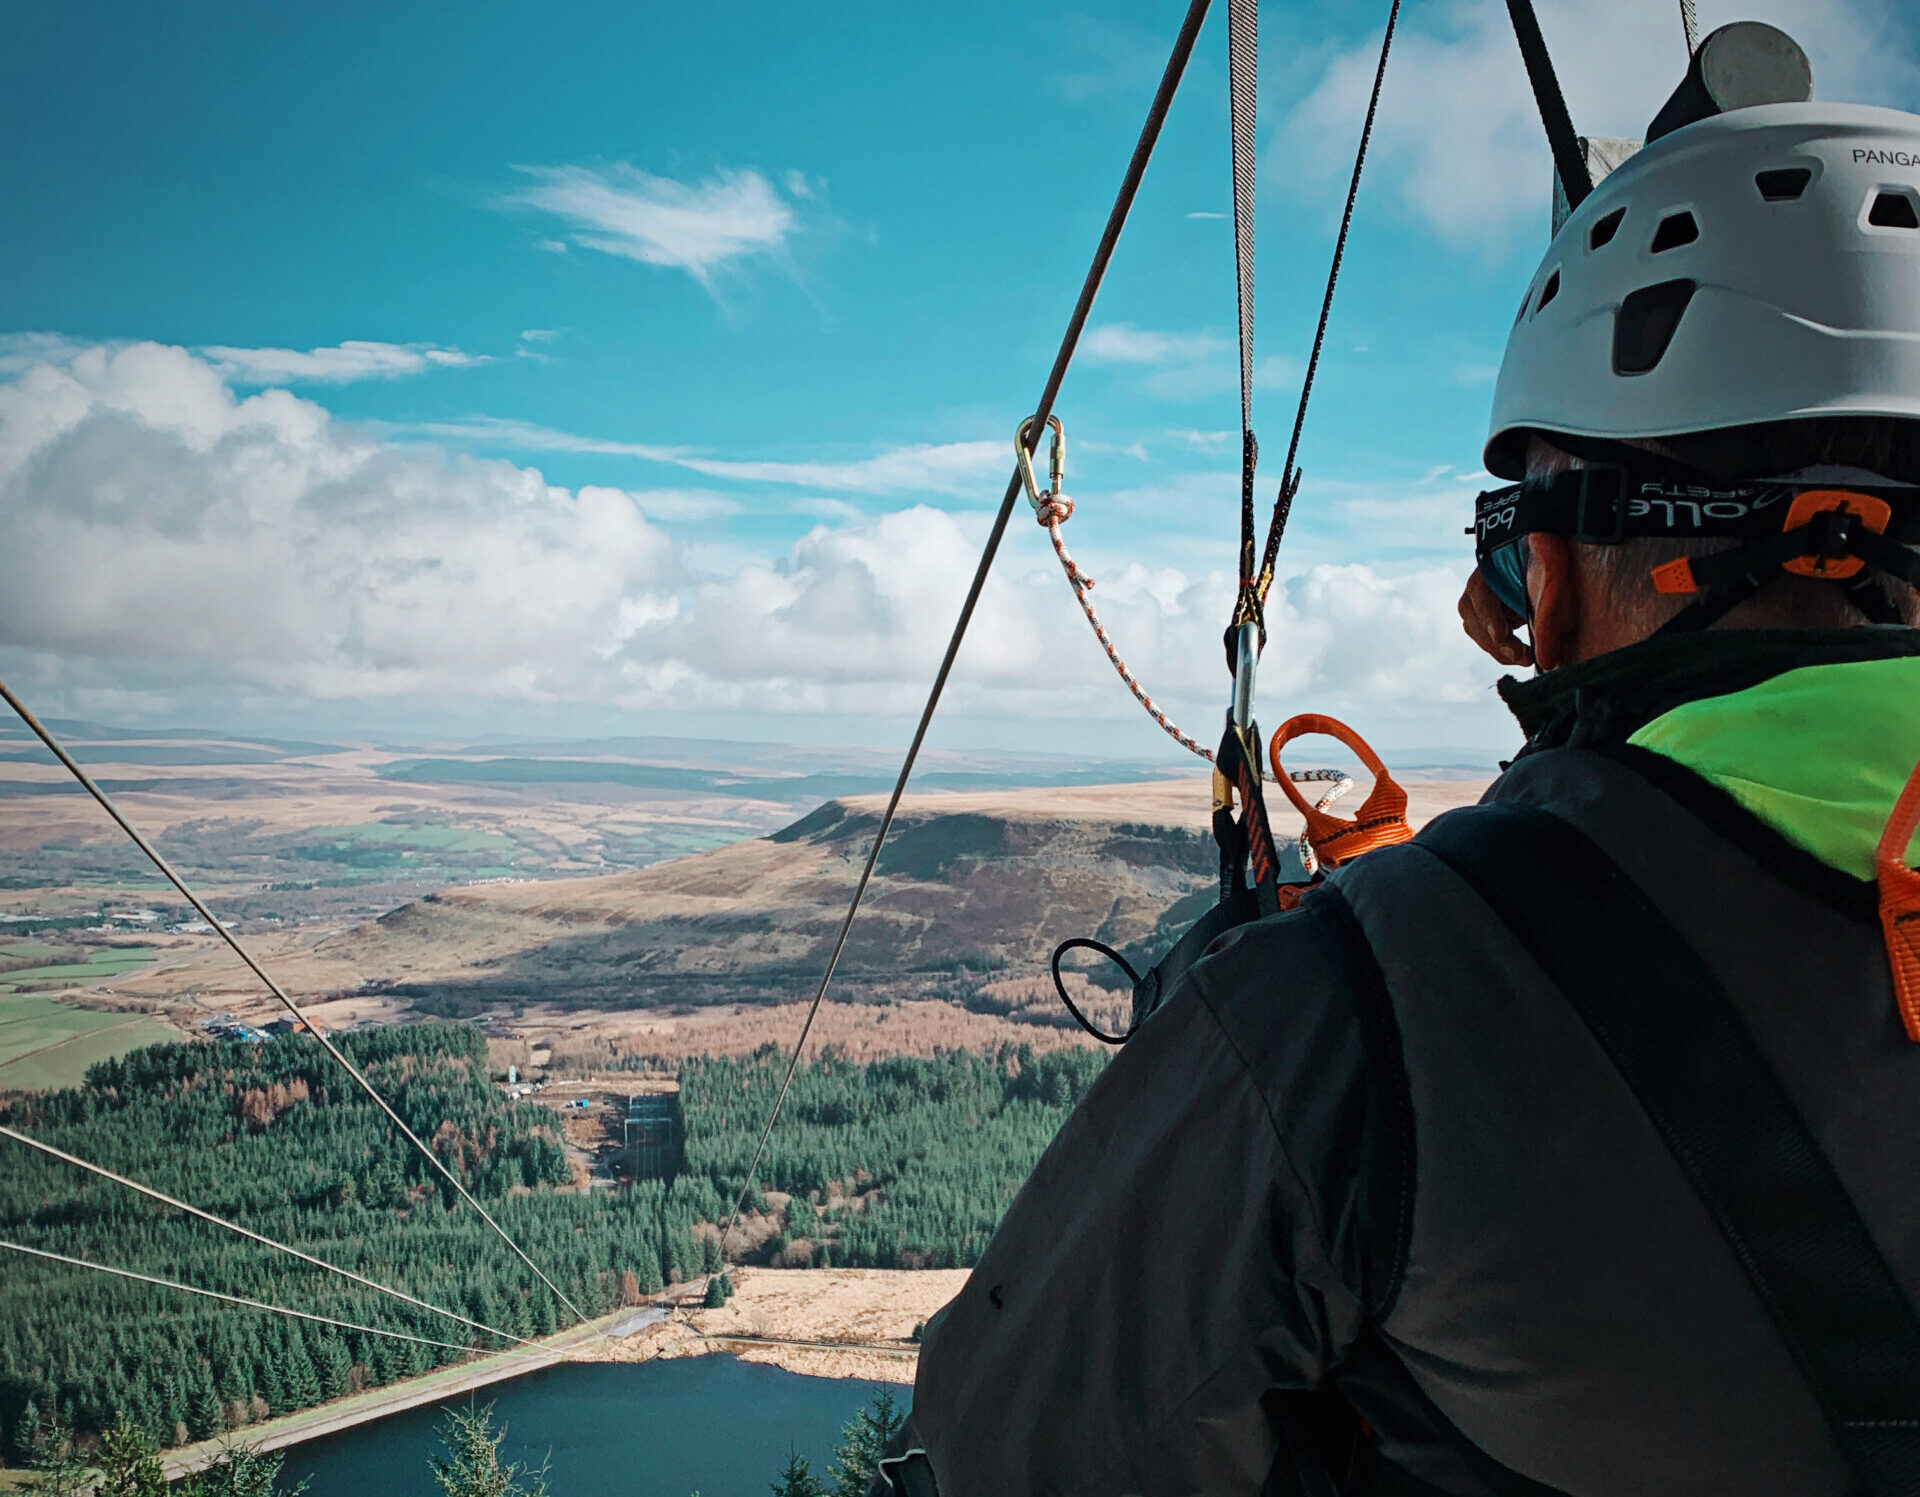 Major boost for South Wales tourism economy this Spring as old meets new at Zip World Tower